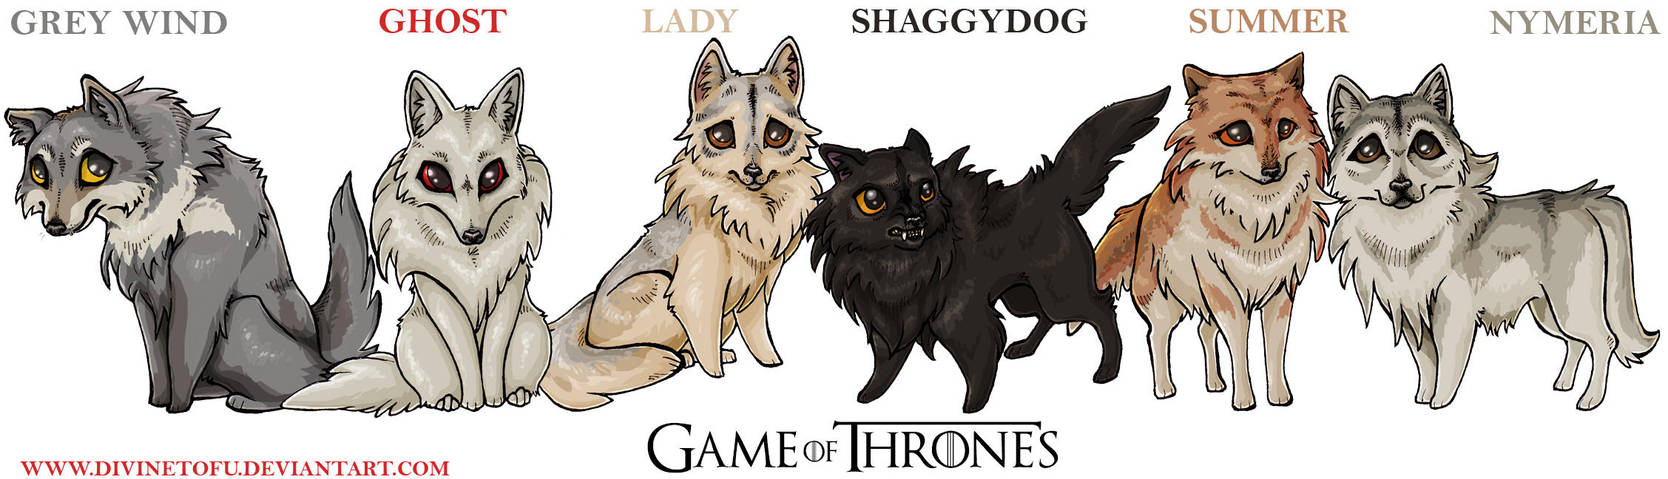 Dire Wolf Game Of Thrones Wallpaper Lannister